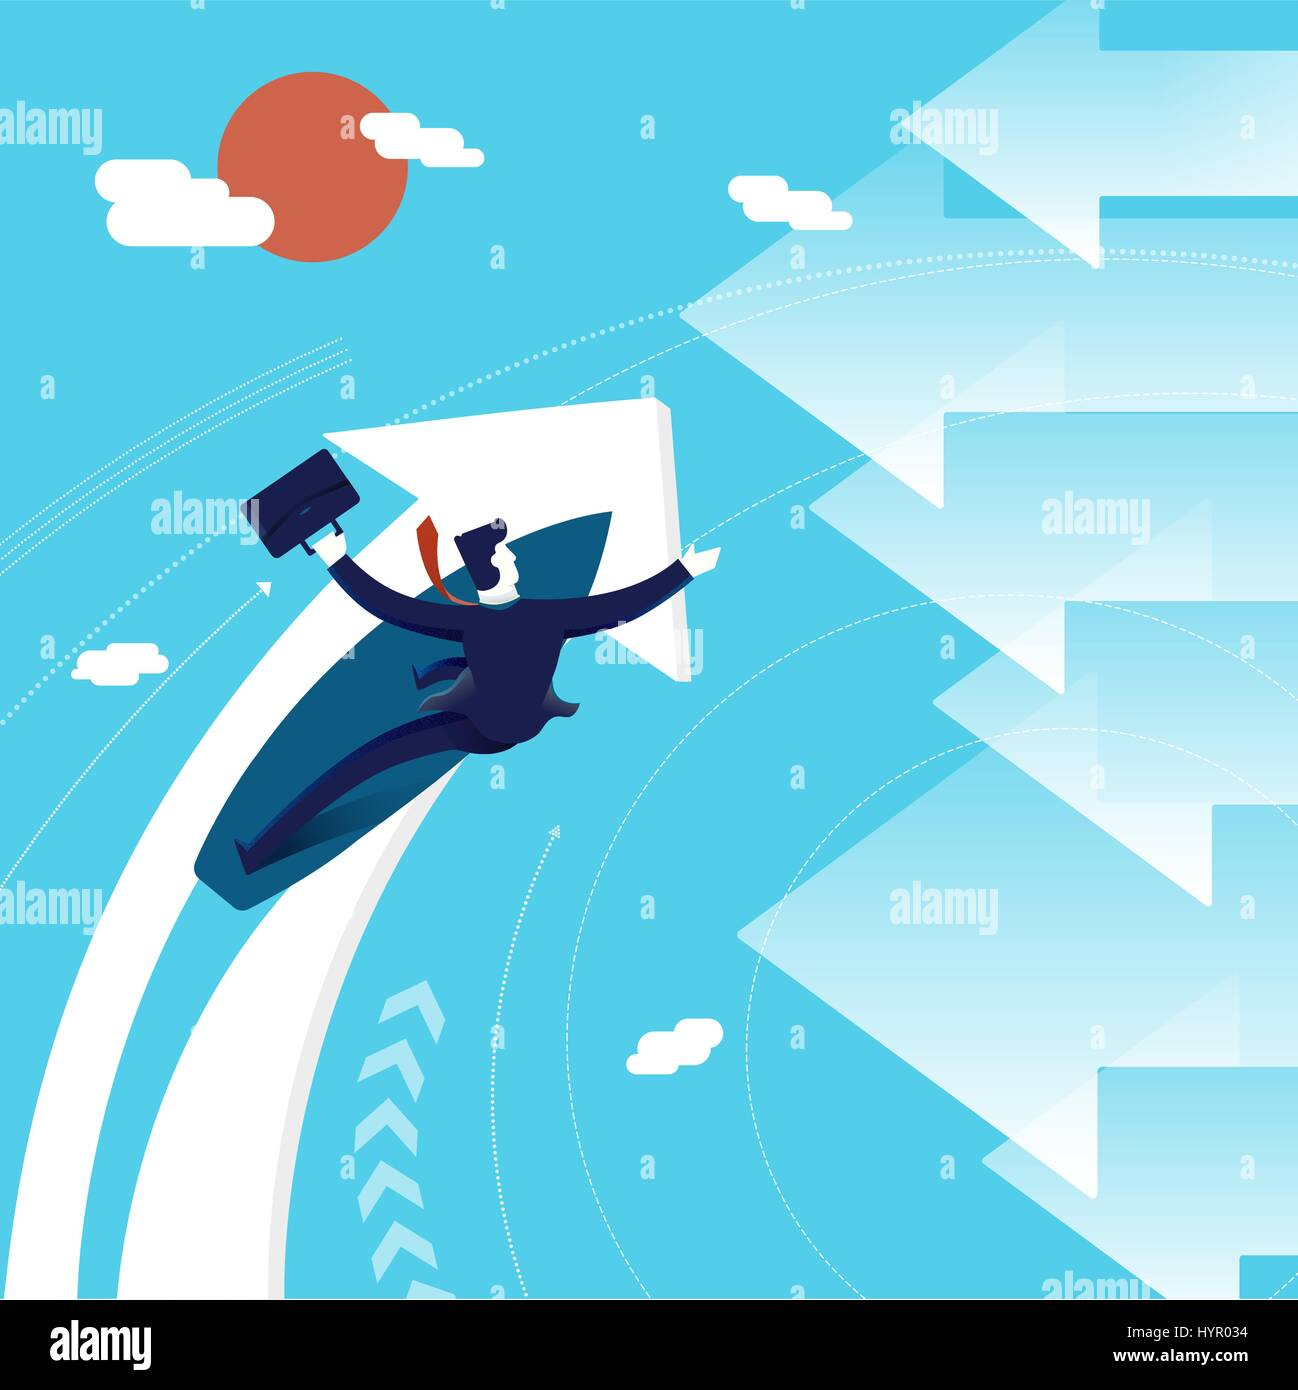 Business concept illustration: entrepreneur or executive man surfing in a new direction. Modern flat art design - Stock Vector